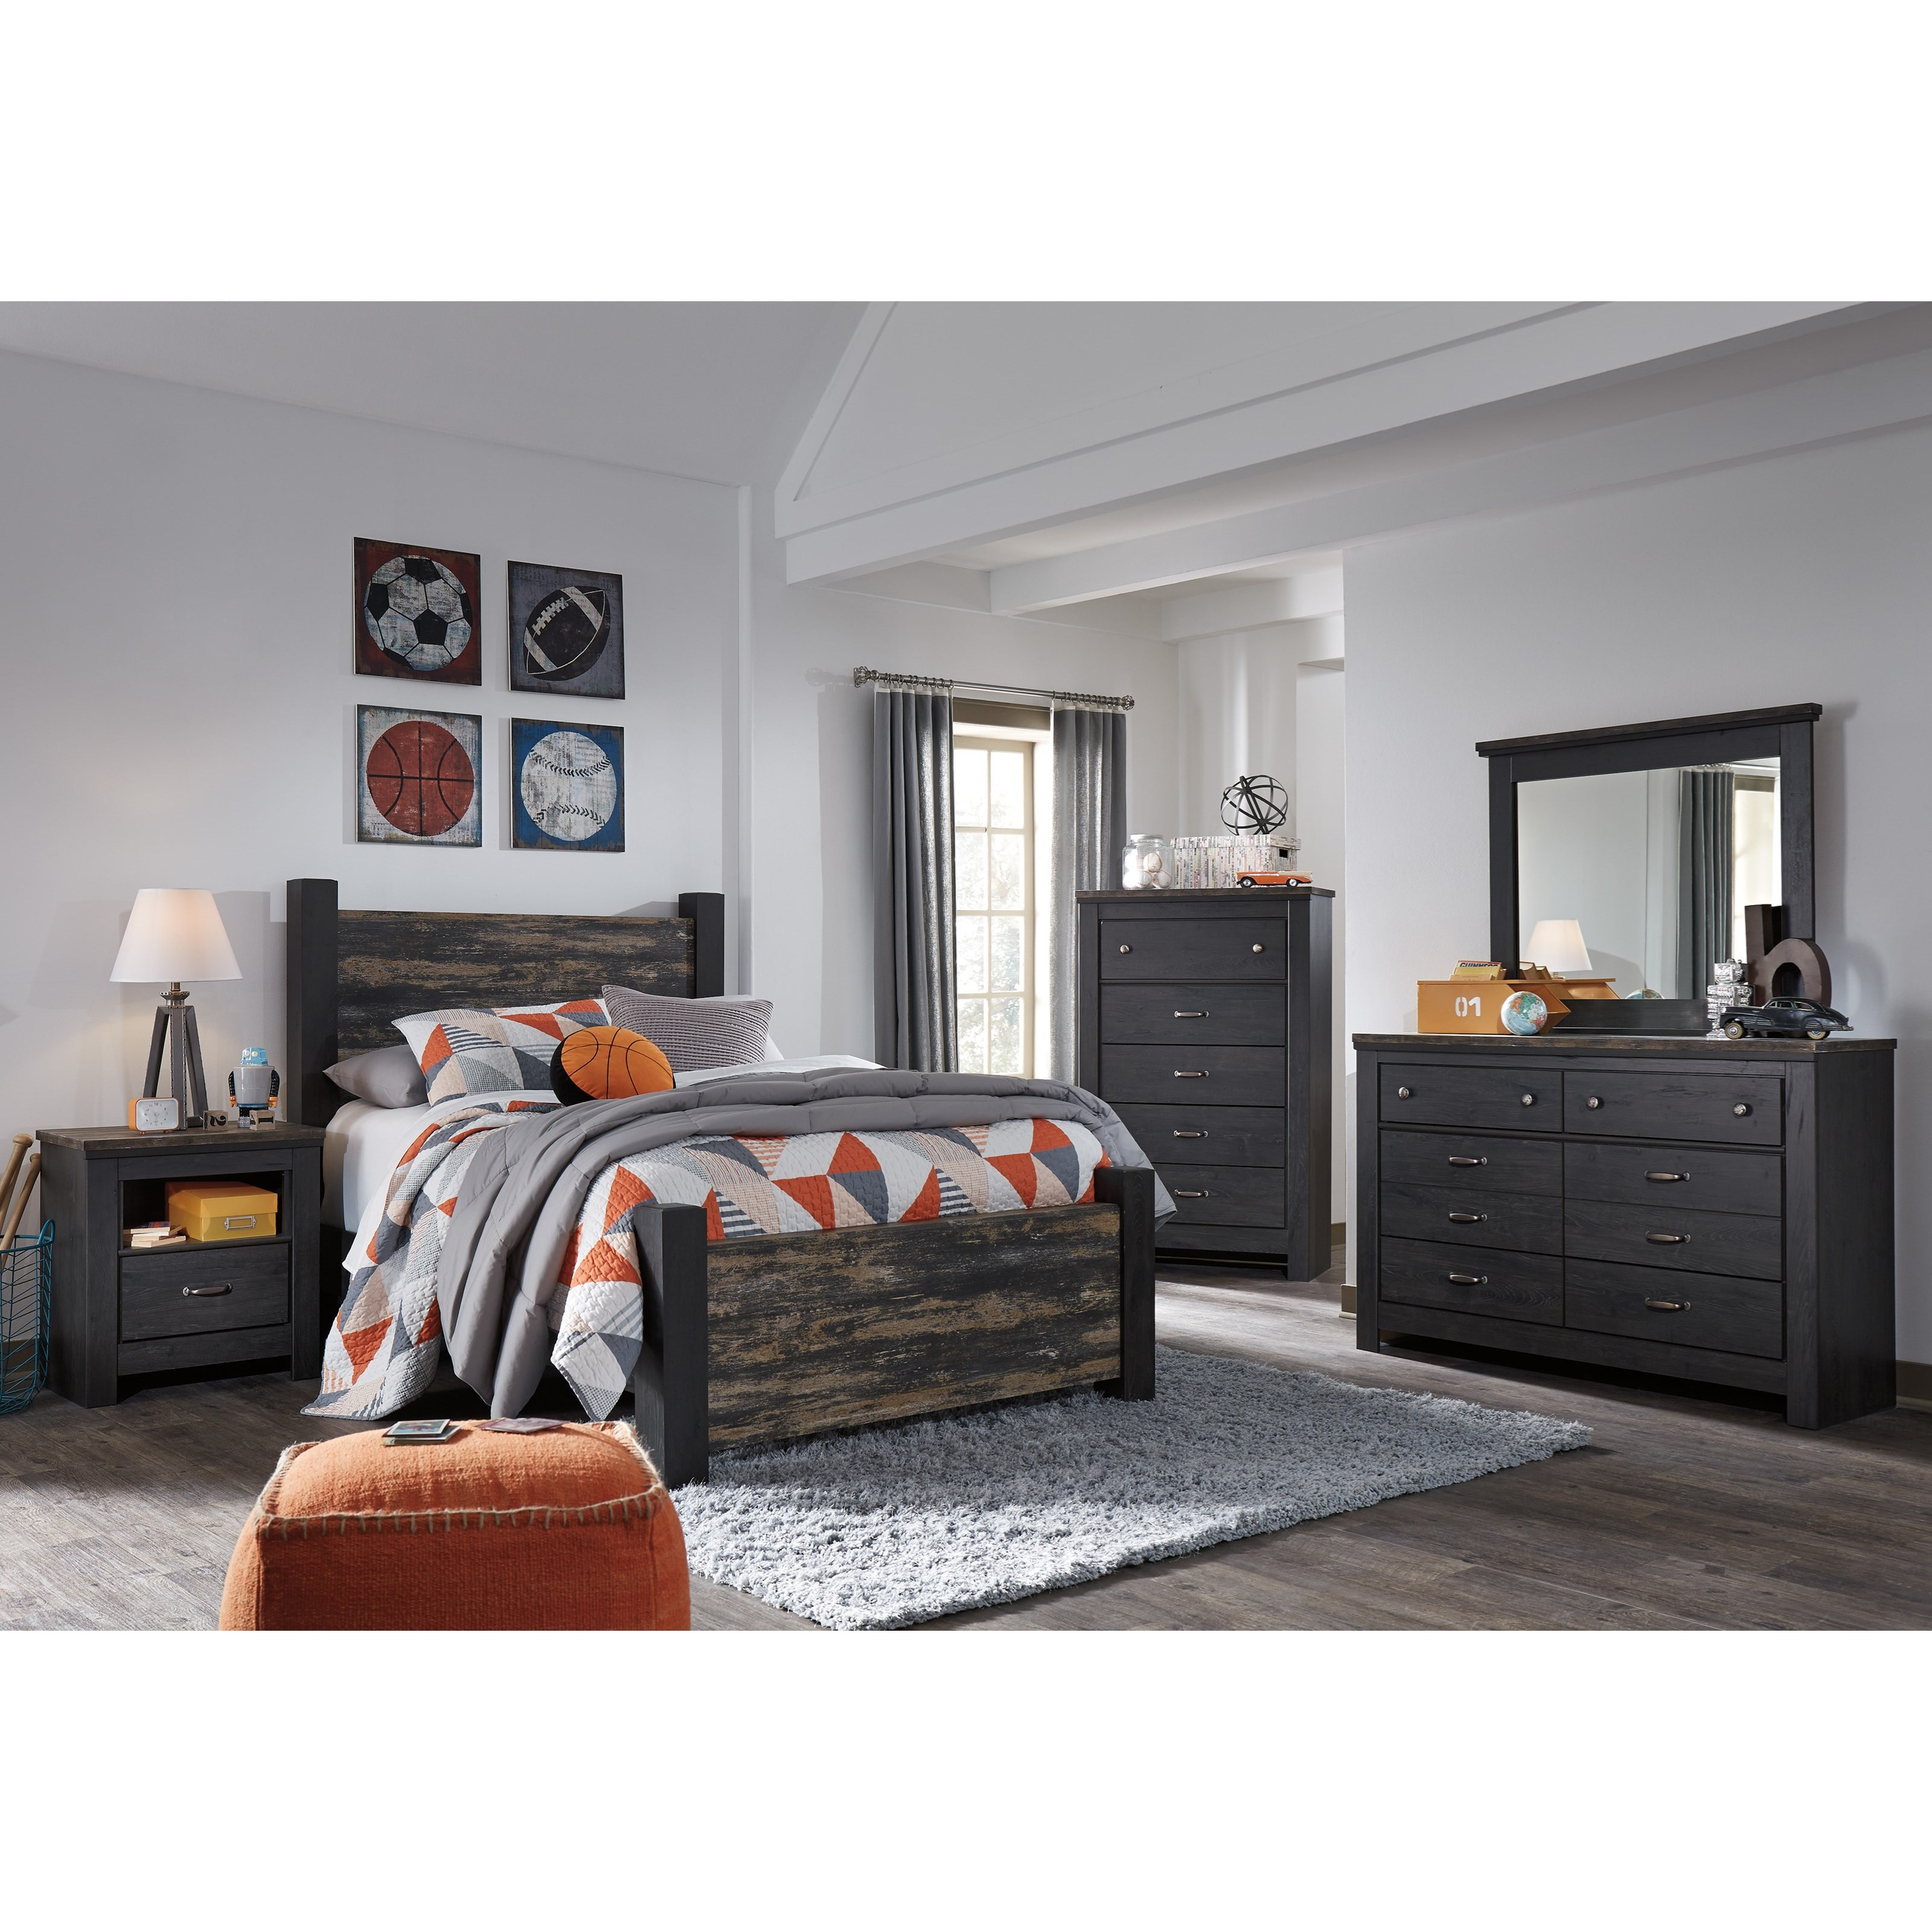 Signature Design by Ashley Westinton Full Bedroom Group - Item Number: B189 F Bedroom Group 1